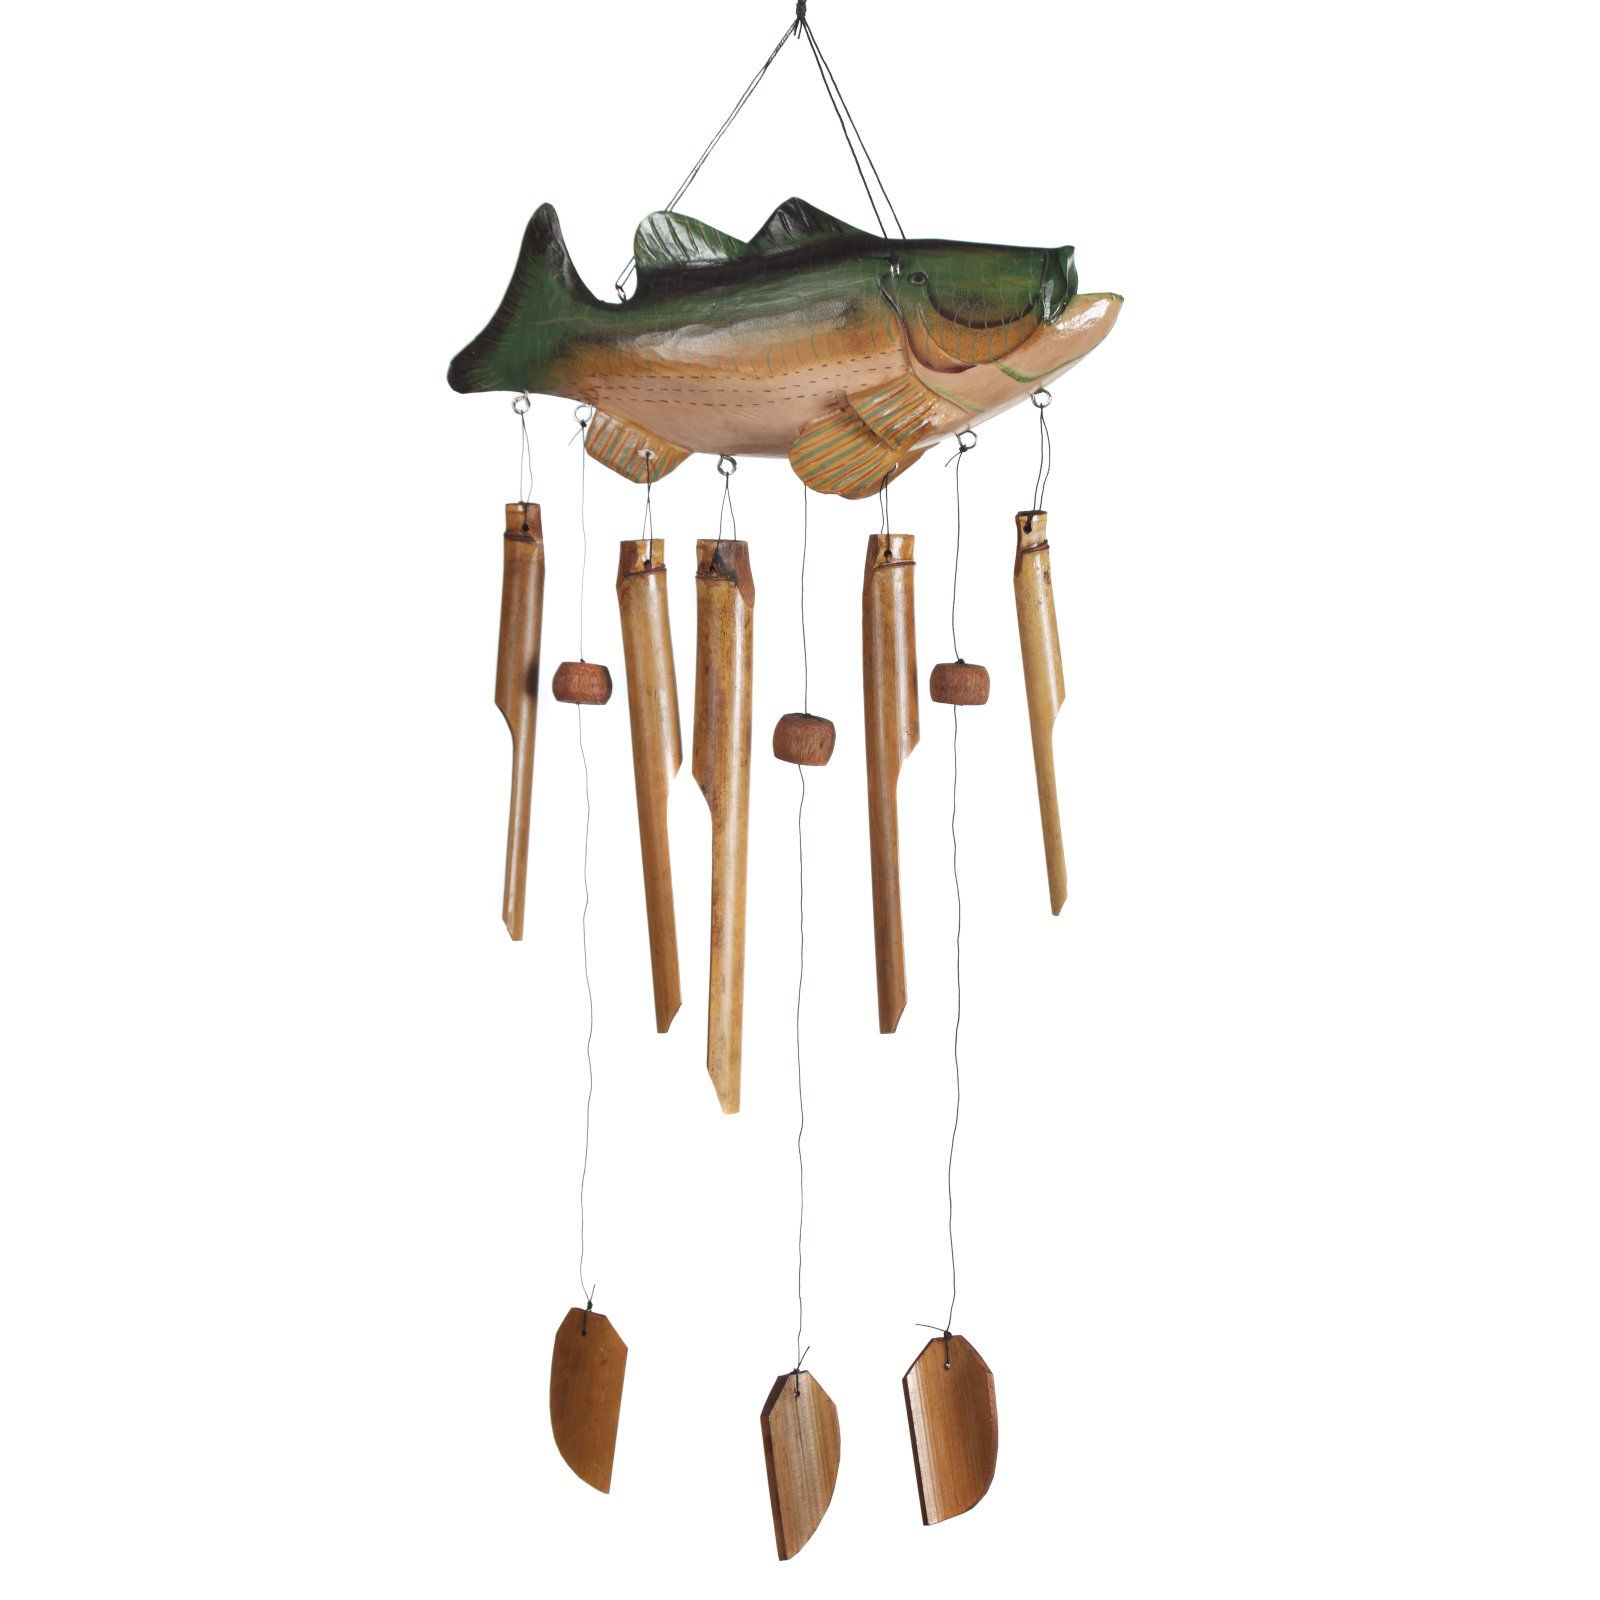 Bass Fish Wind Chime Wind Chimes Large Wind Chimes Bamboo Wind Chimes